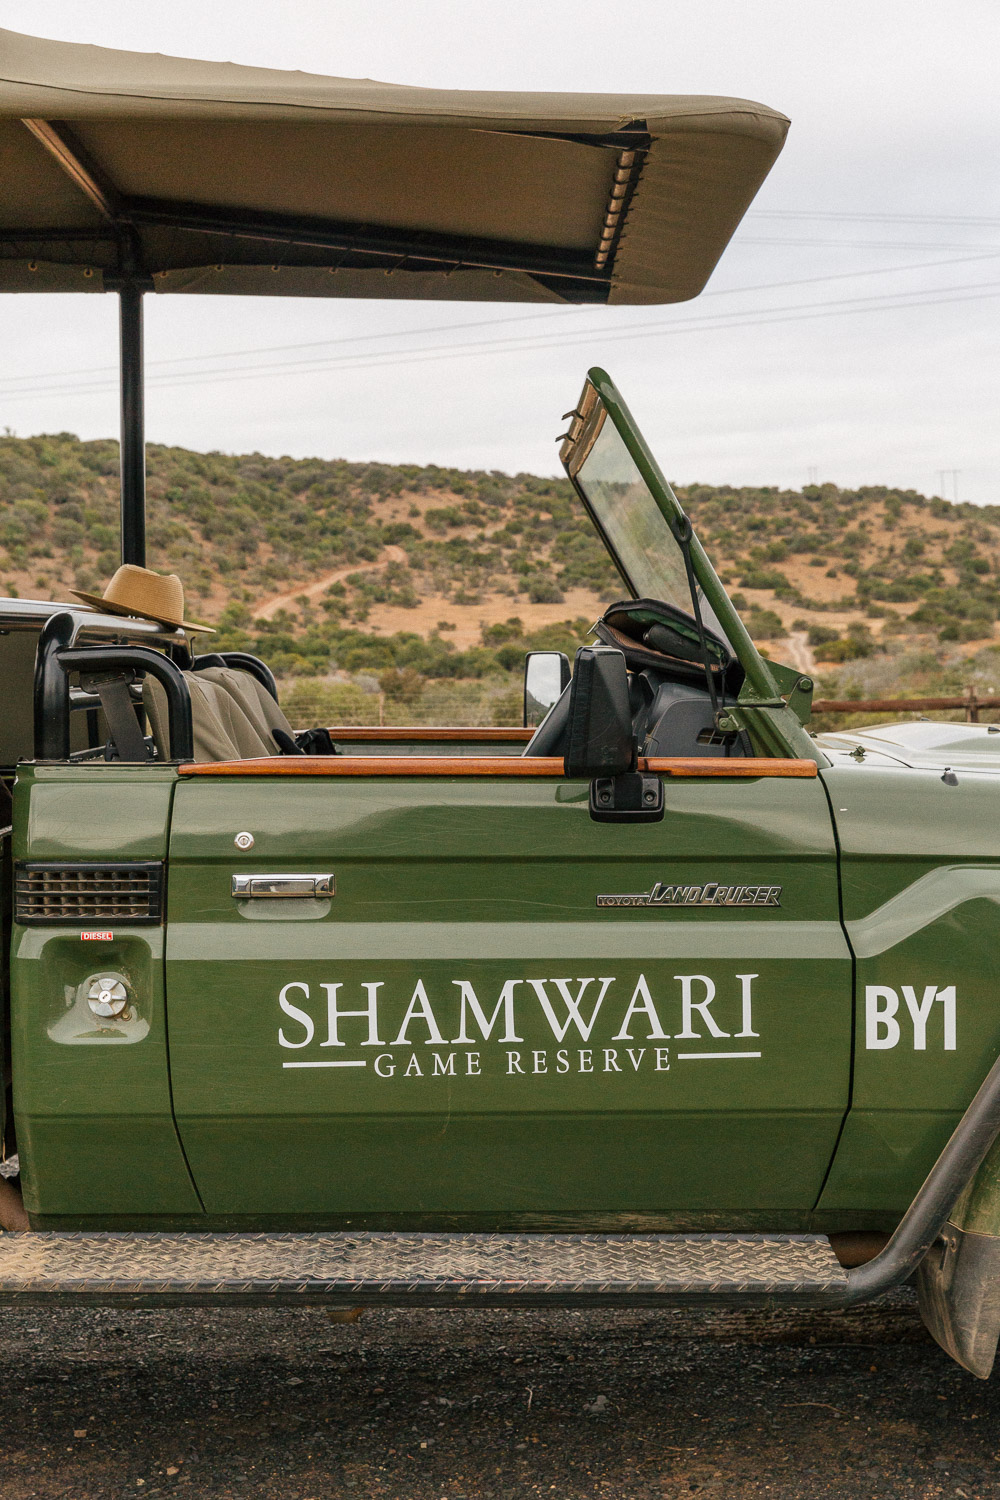 Visiting Shamwari in the Eastern Cape